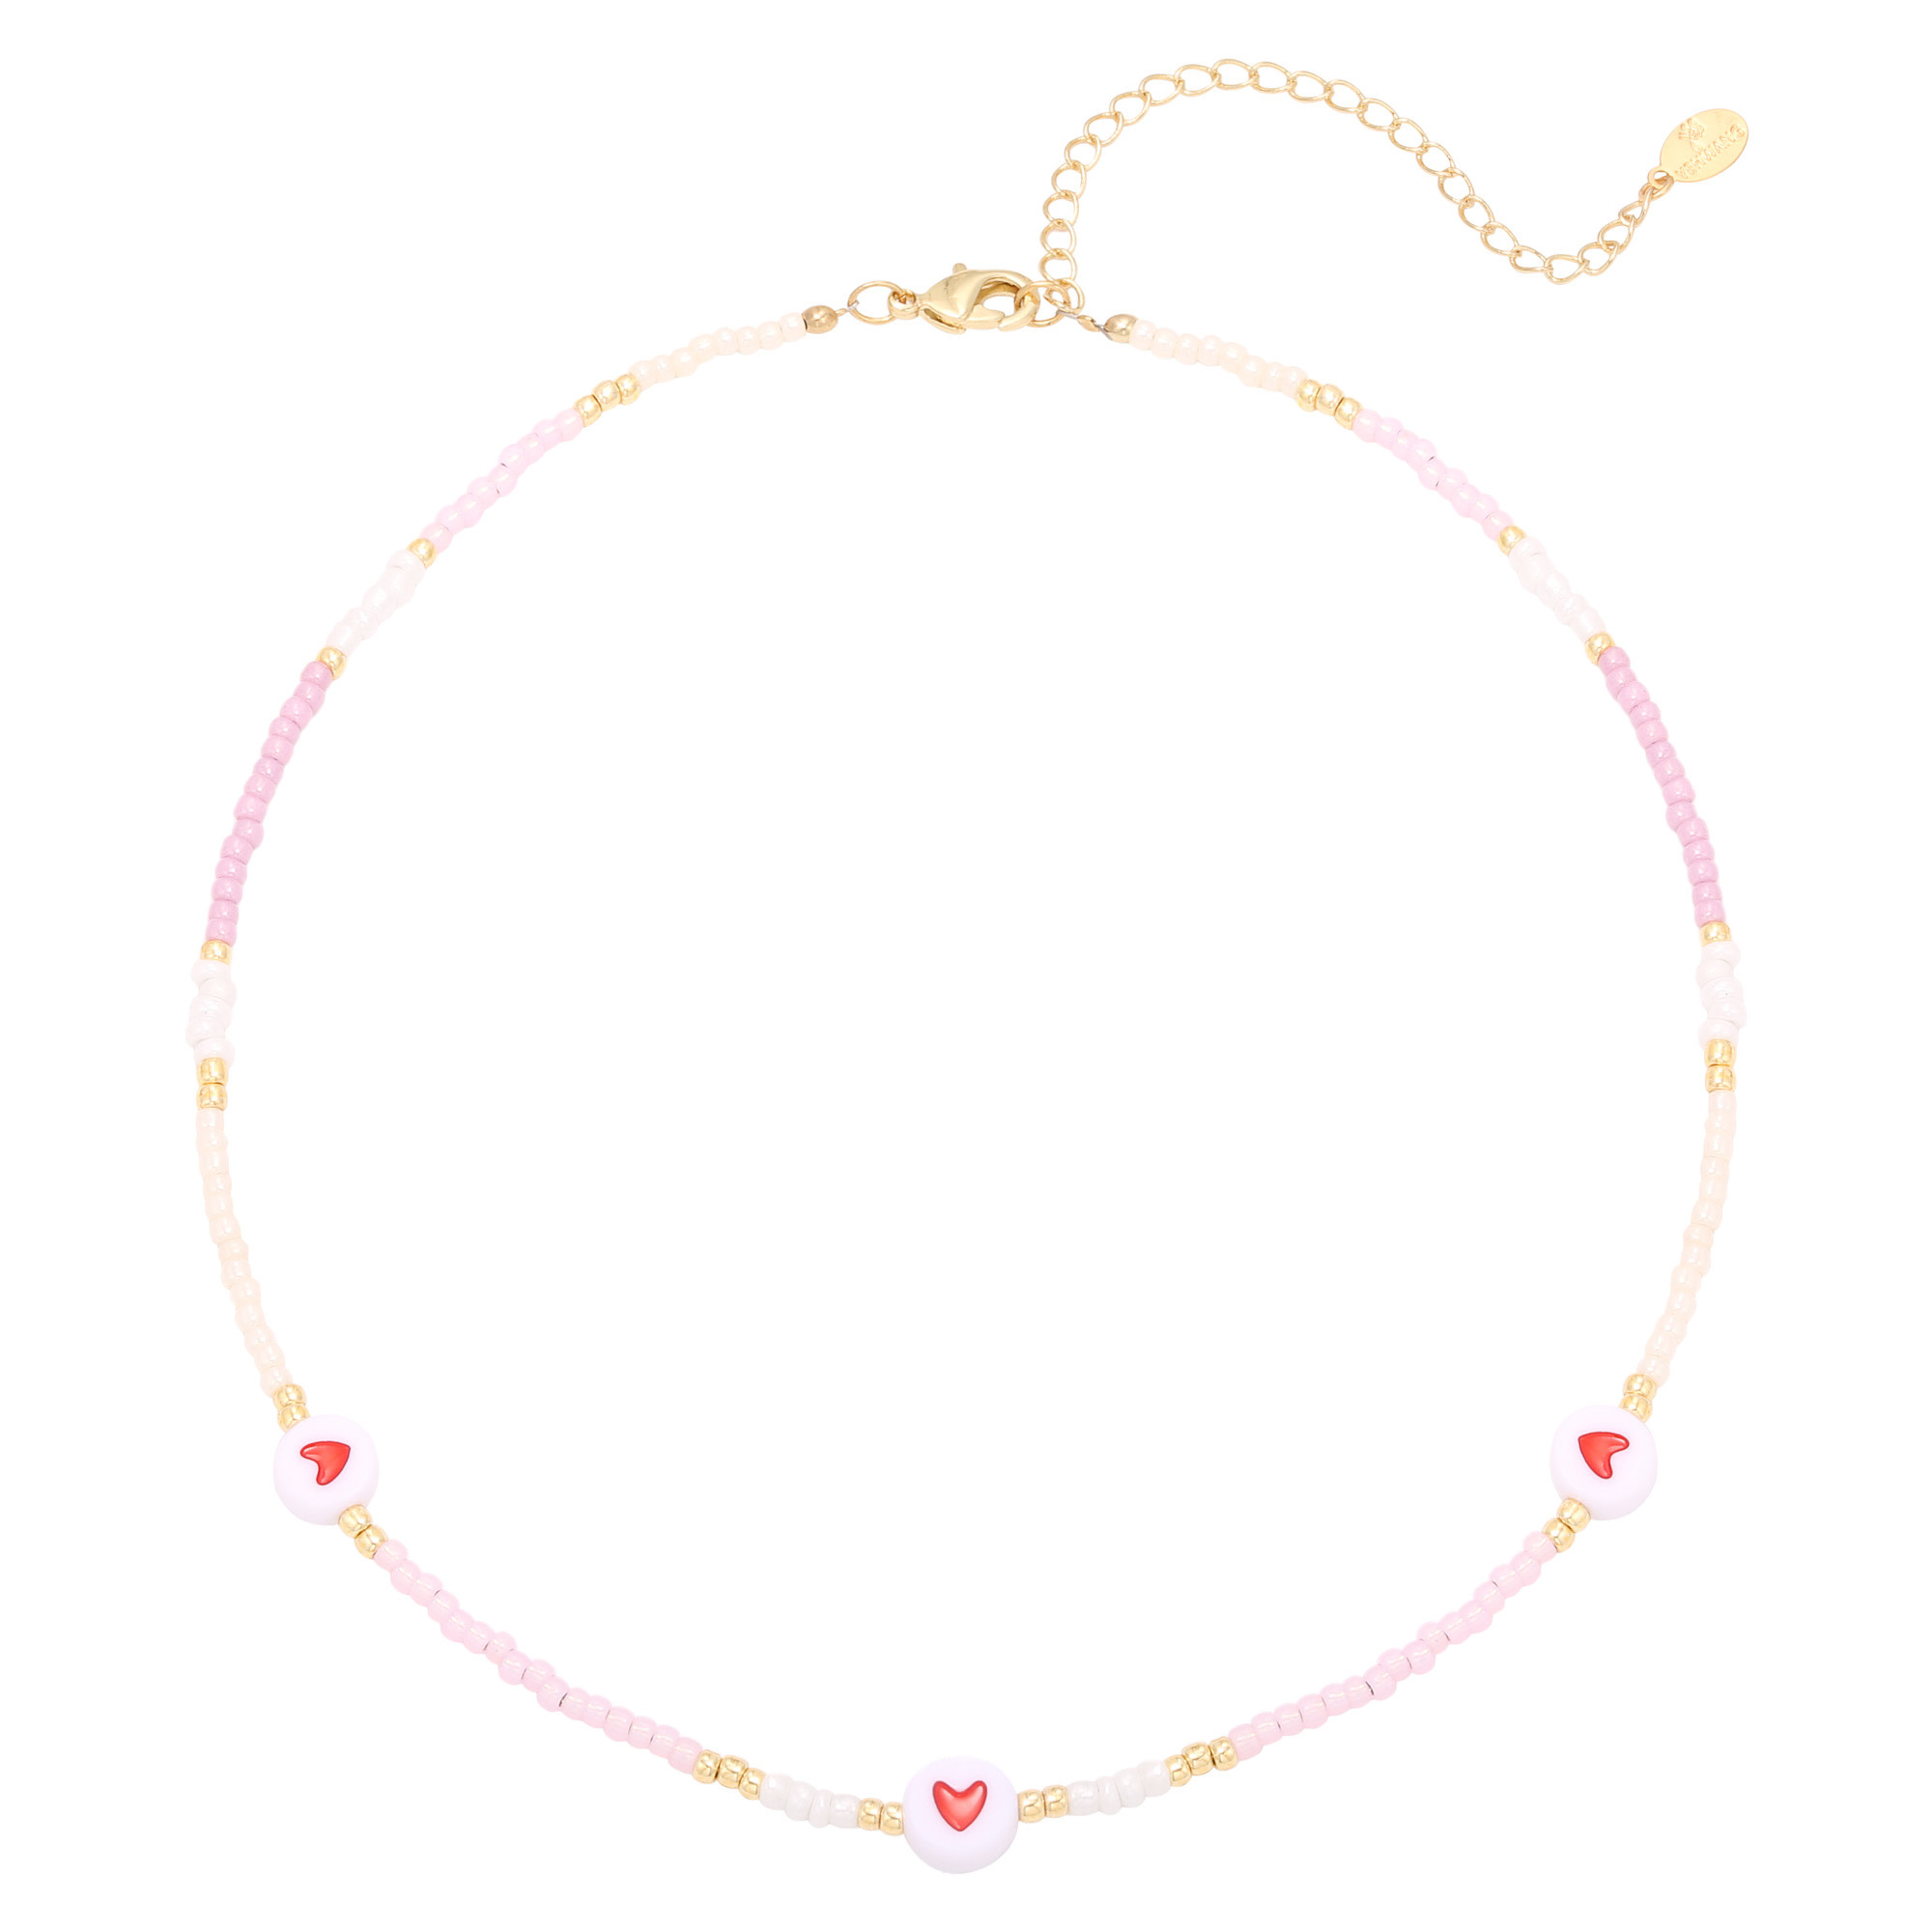 With love Necklace heart colors - pink